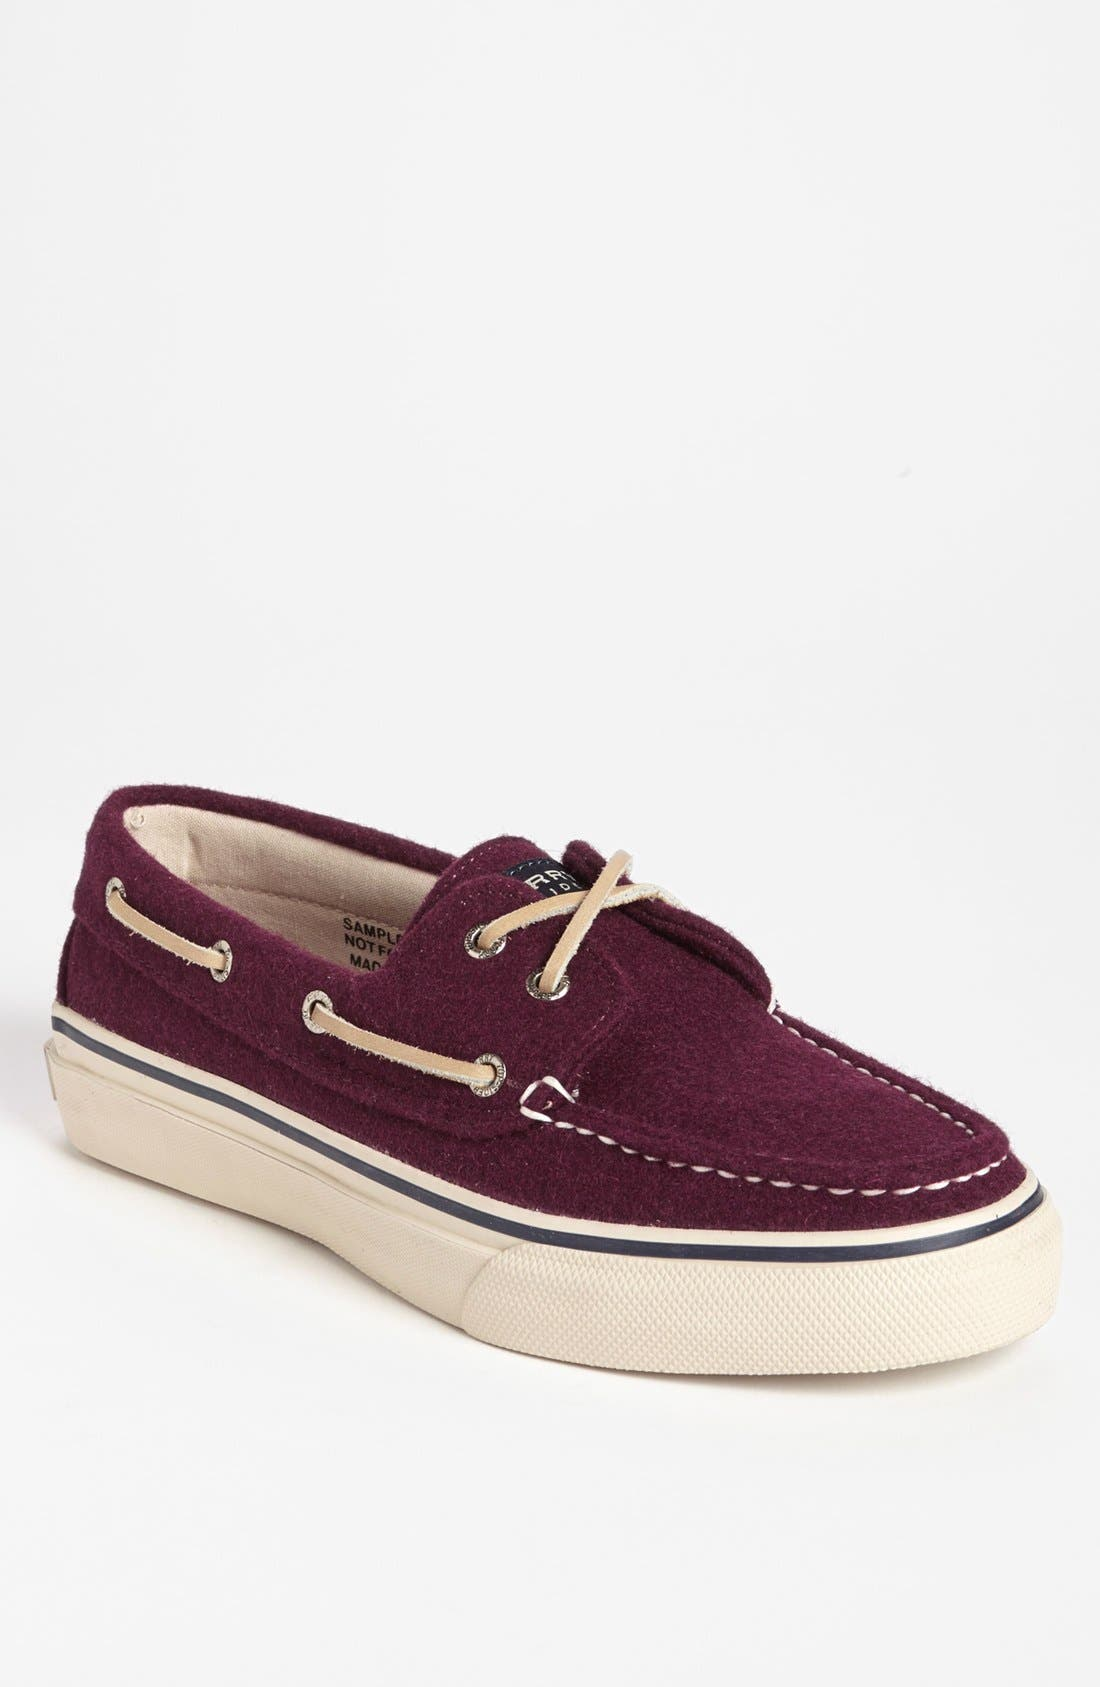 Main Image - Sperry Top-Sider® 'Bahama' Wool Boat Shoe